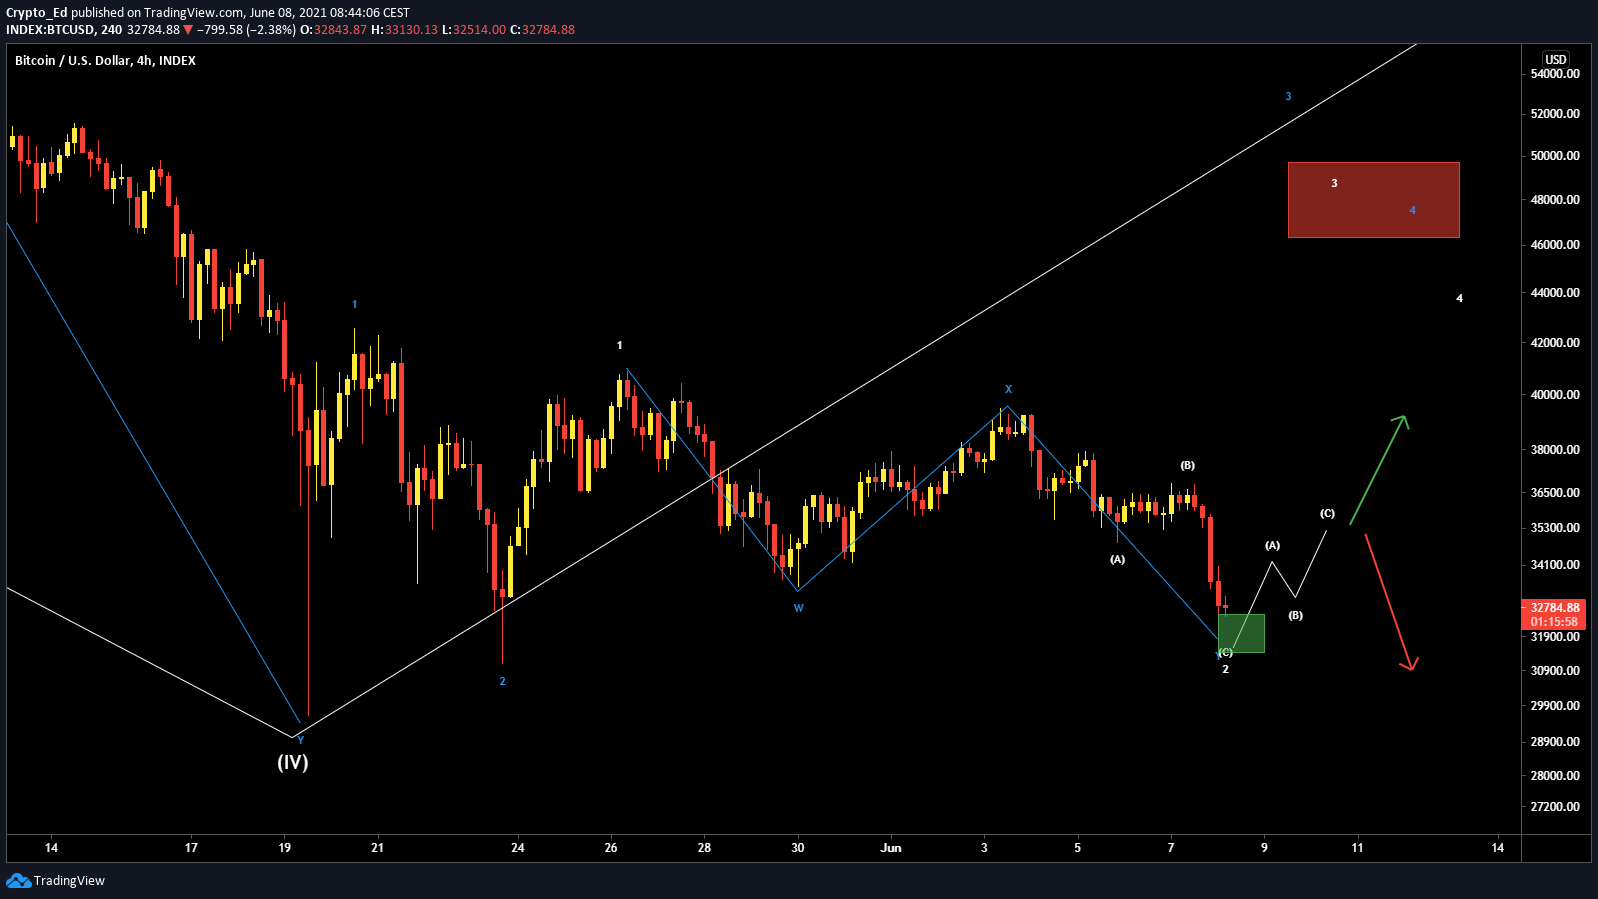 Crypto Ed's BTC price chart with ABC structure. Source: Crypto Ed/Twitter